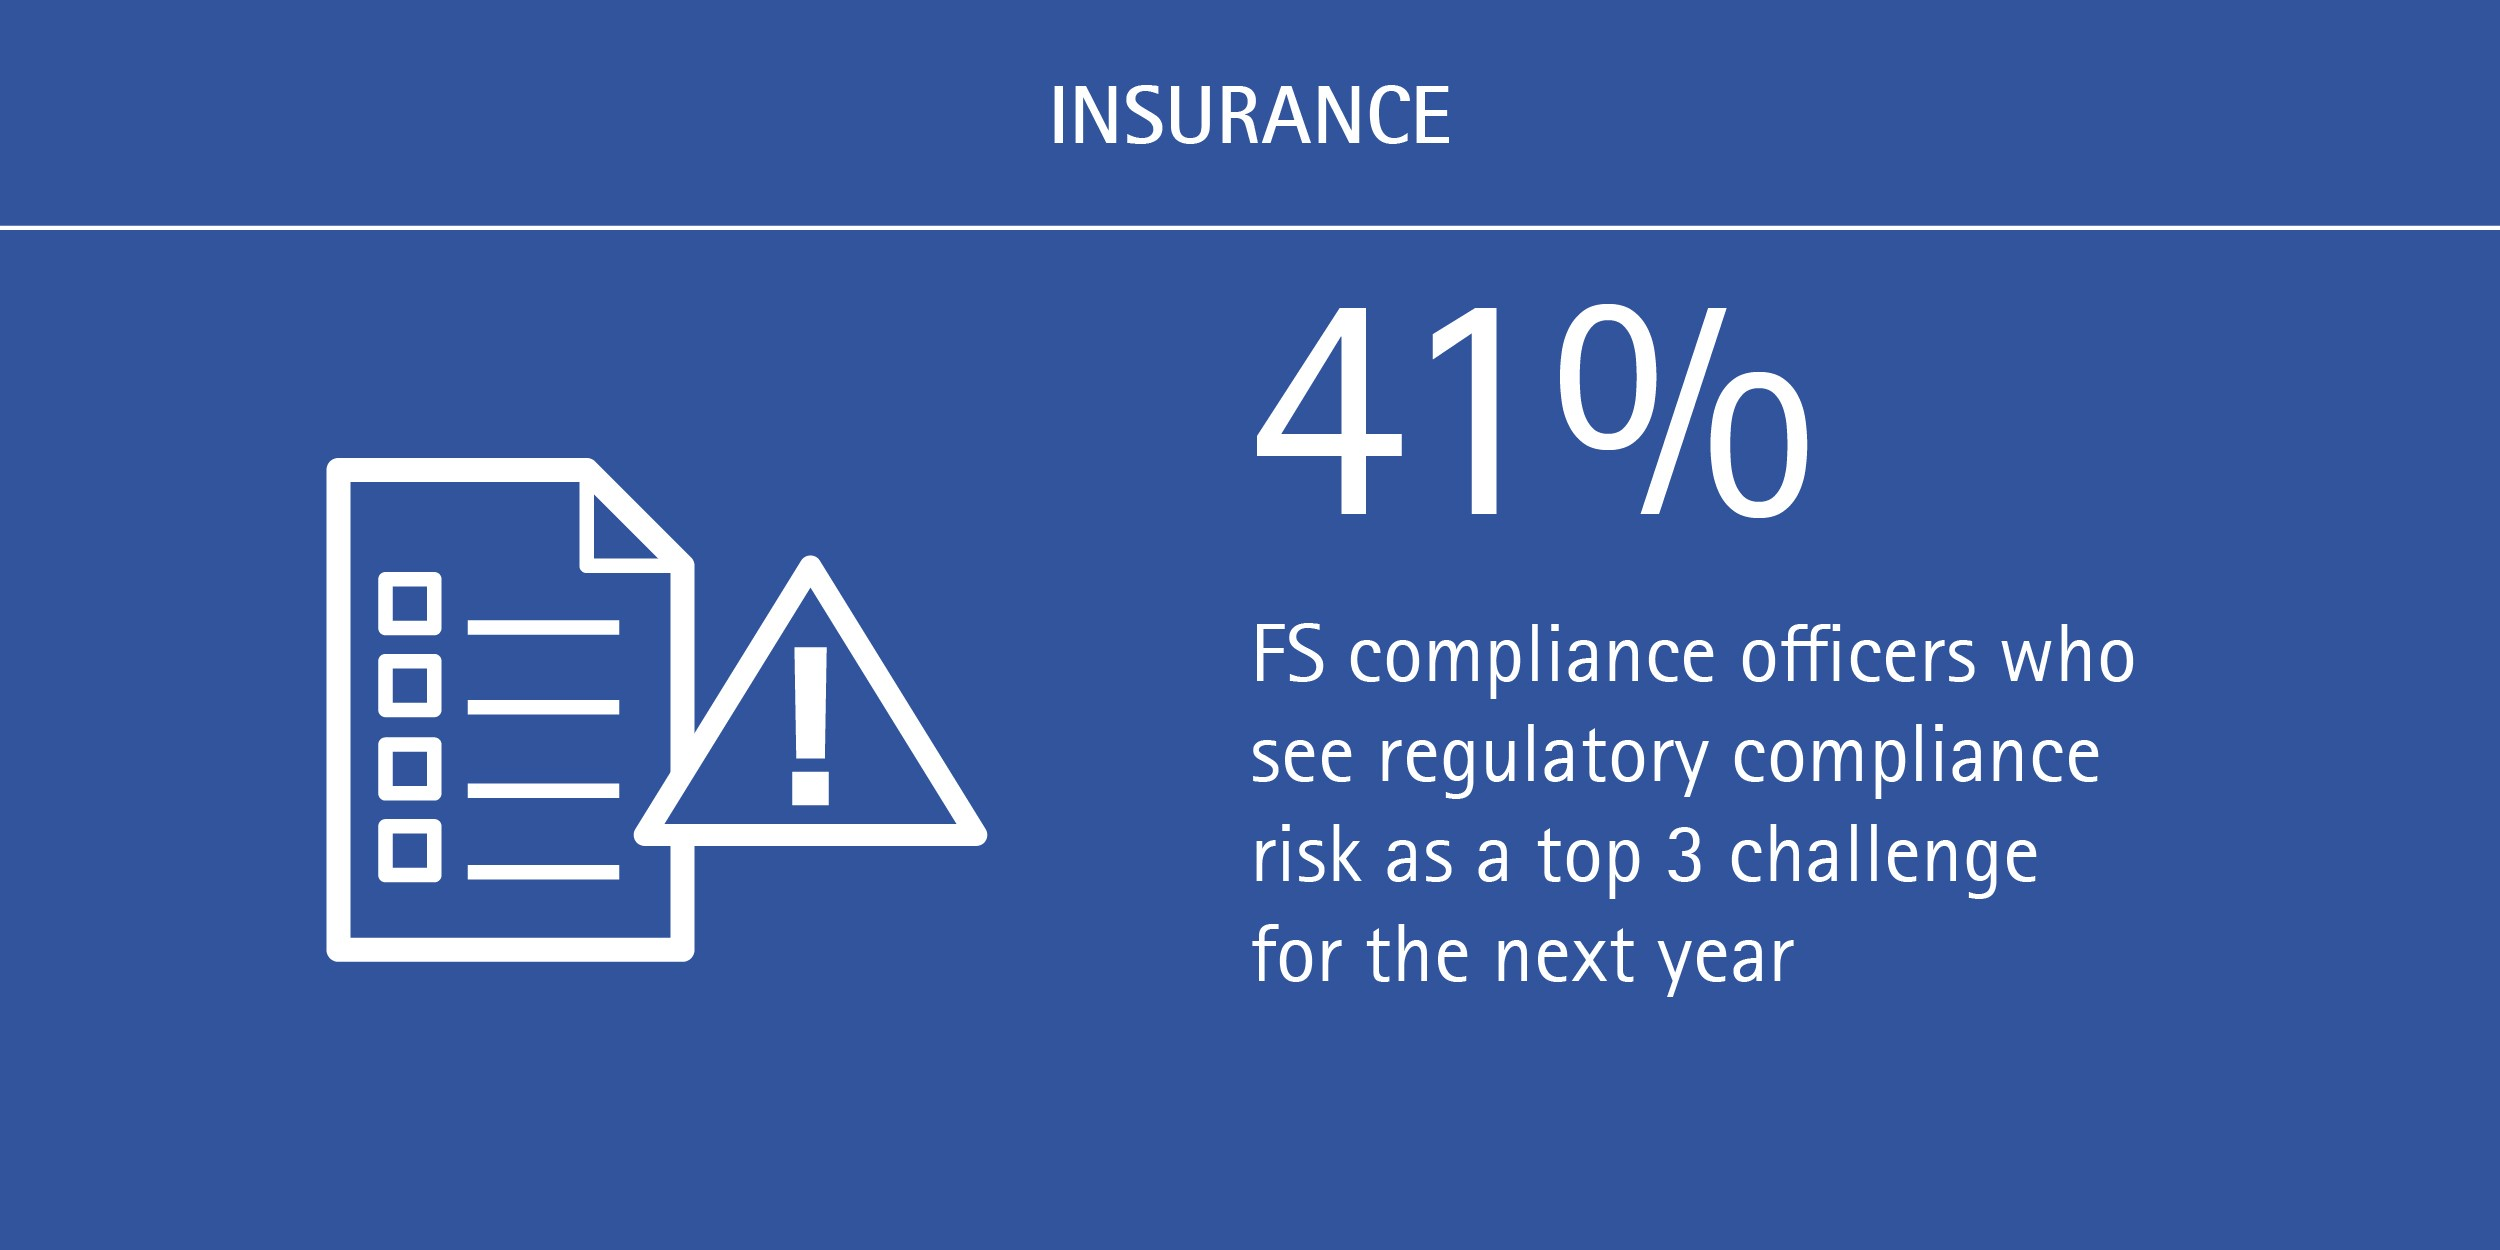 41% of FS compliance officers see regulatory compliance risk as a top 3 challenge for the next year